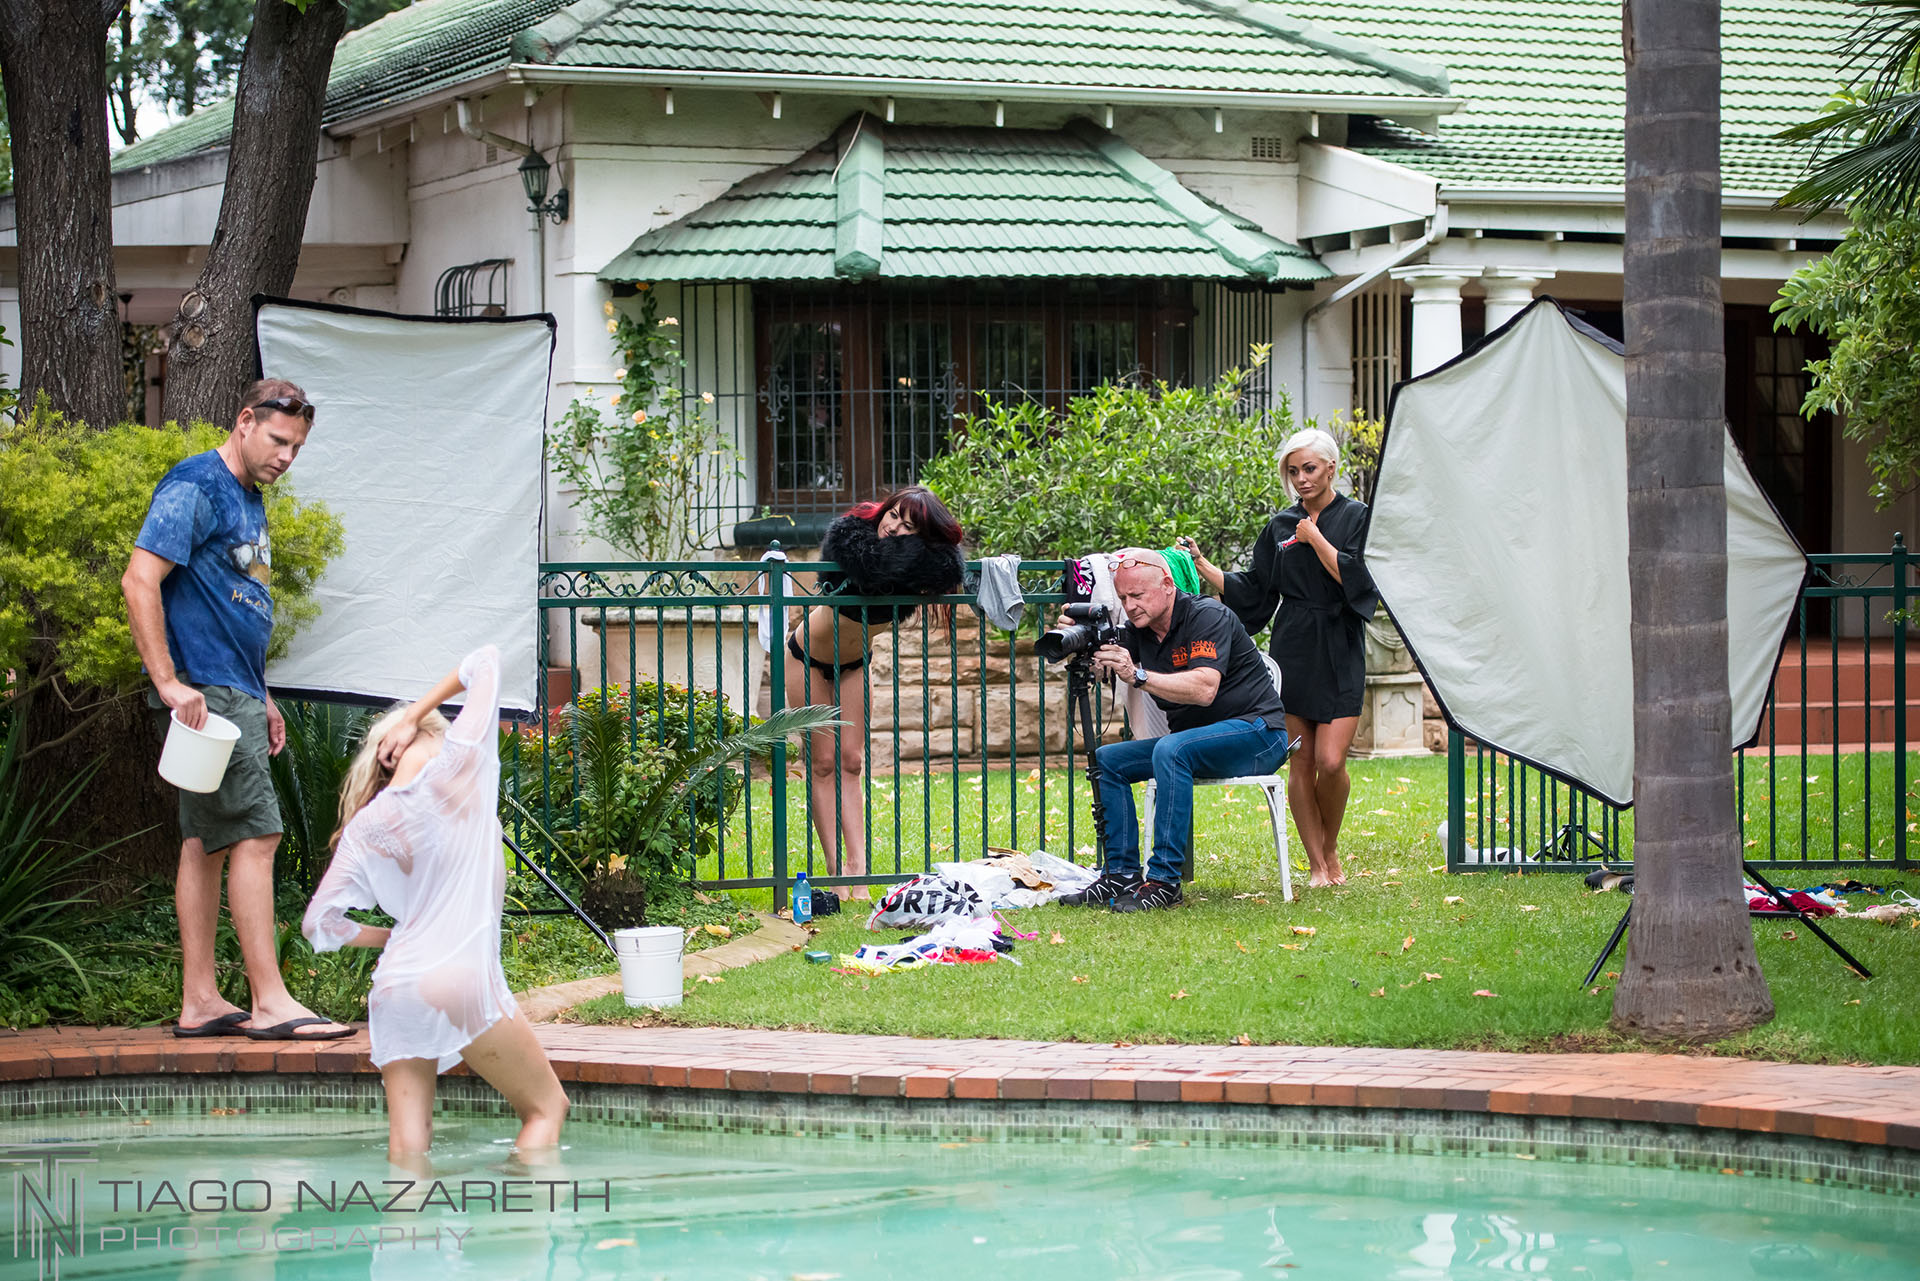 Danny's Angels Photo Shoot at Nazareth Studios, Westdene, Benoni - 25 March 2018